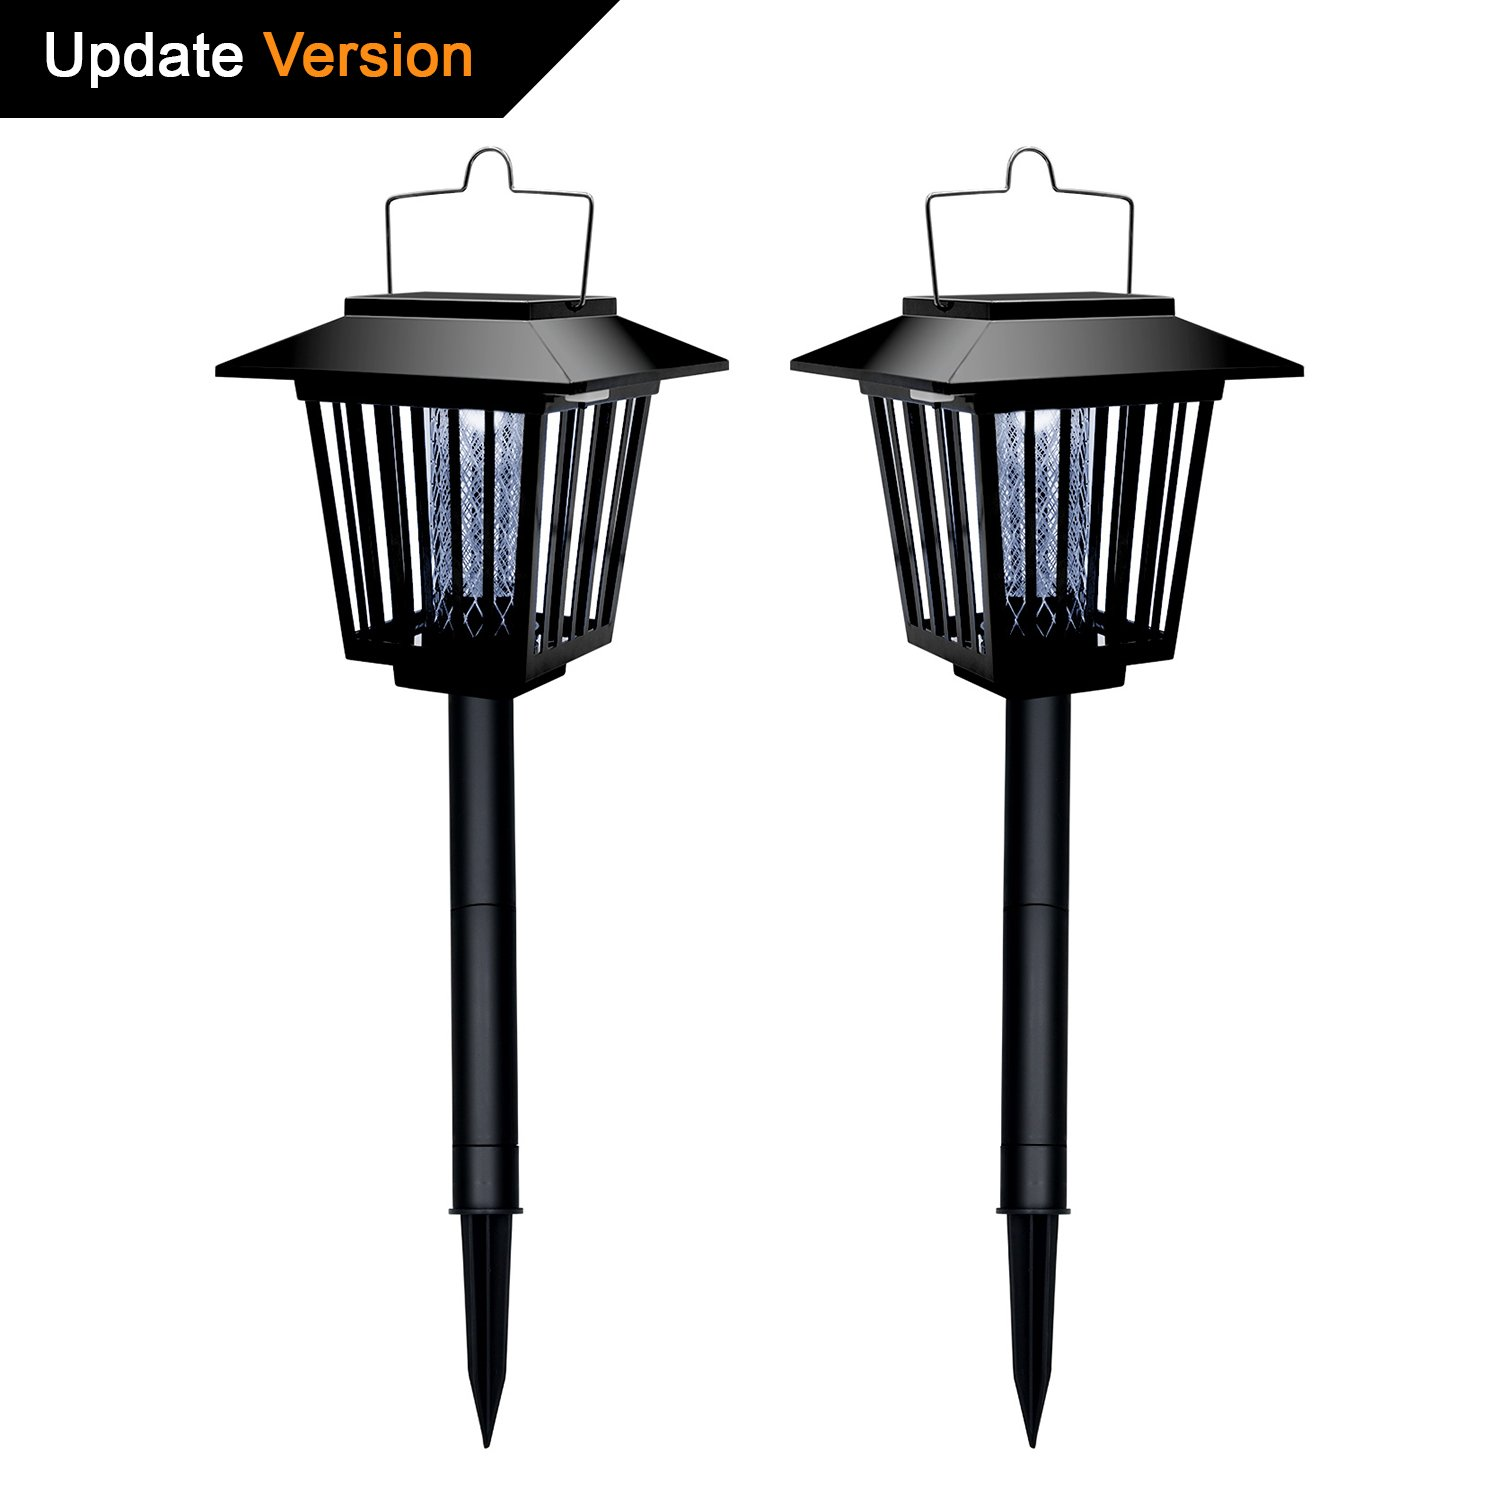 Wsky Upgraded Led Solar Pathway Garden Lights Outdoor, Bug Zapper Solar Landscape Light, Auto On/Off, Best for Lawn, Patio, Deck, Yard, Walkway, Driveway by Wsky